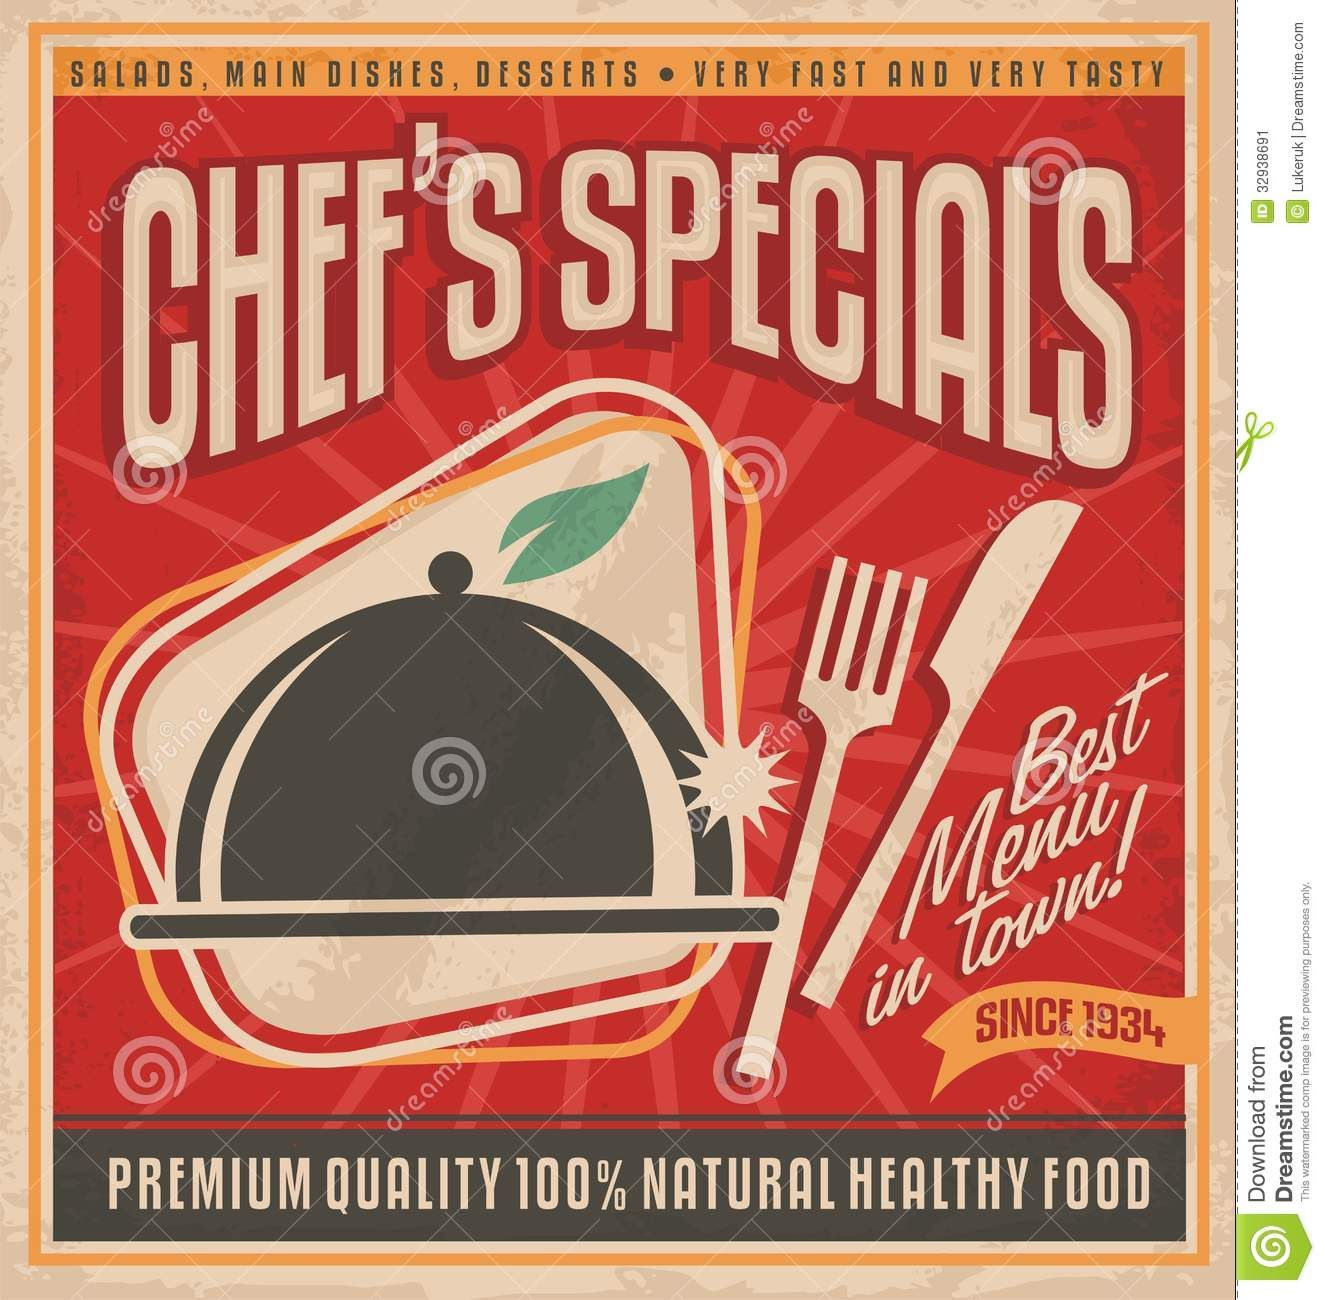 215 Best Images About Festival Food Drink On Pinterest: Retro Cocktail Lounge Vector Poster Design Royalty Free